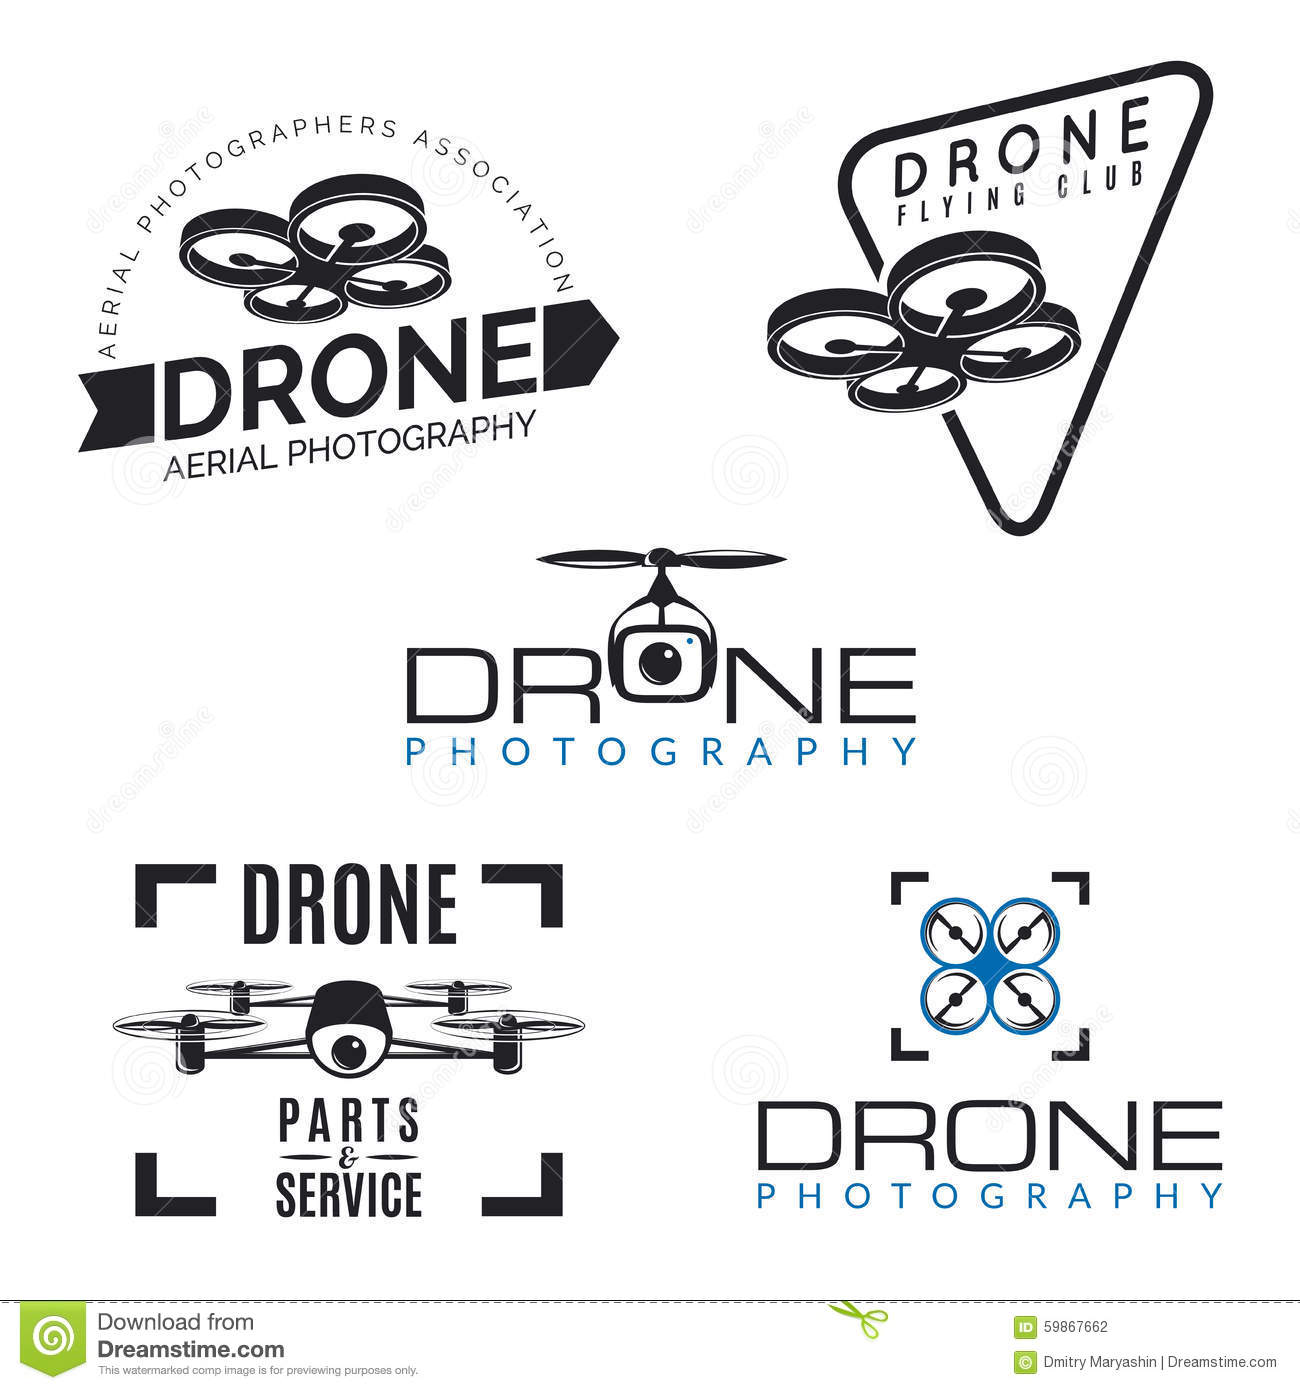 Starting an Aerial Drone Photography Company – Sample Business Plan Template